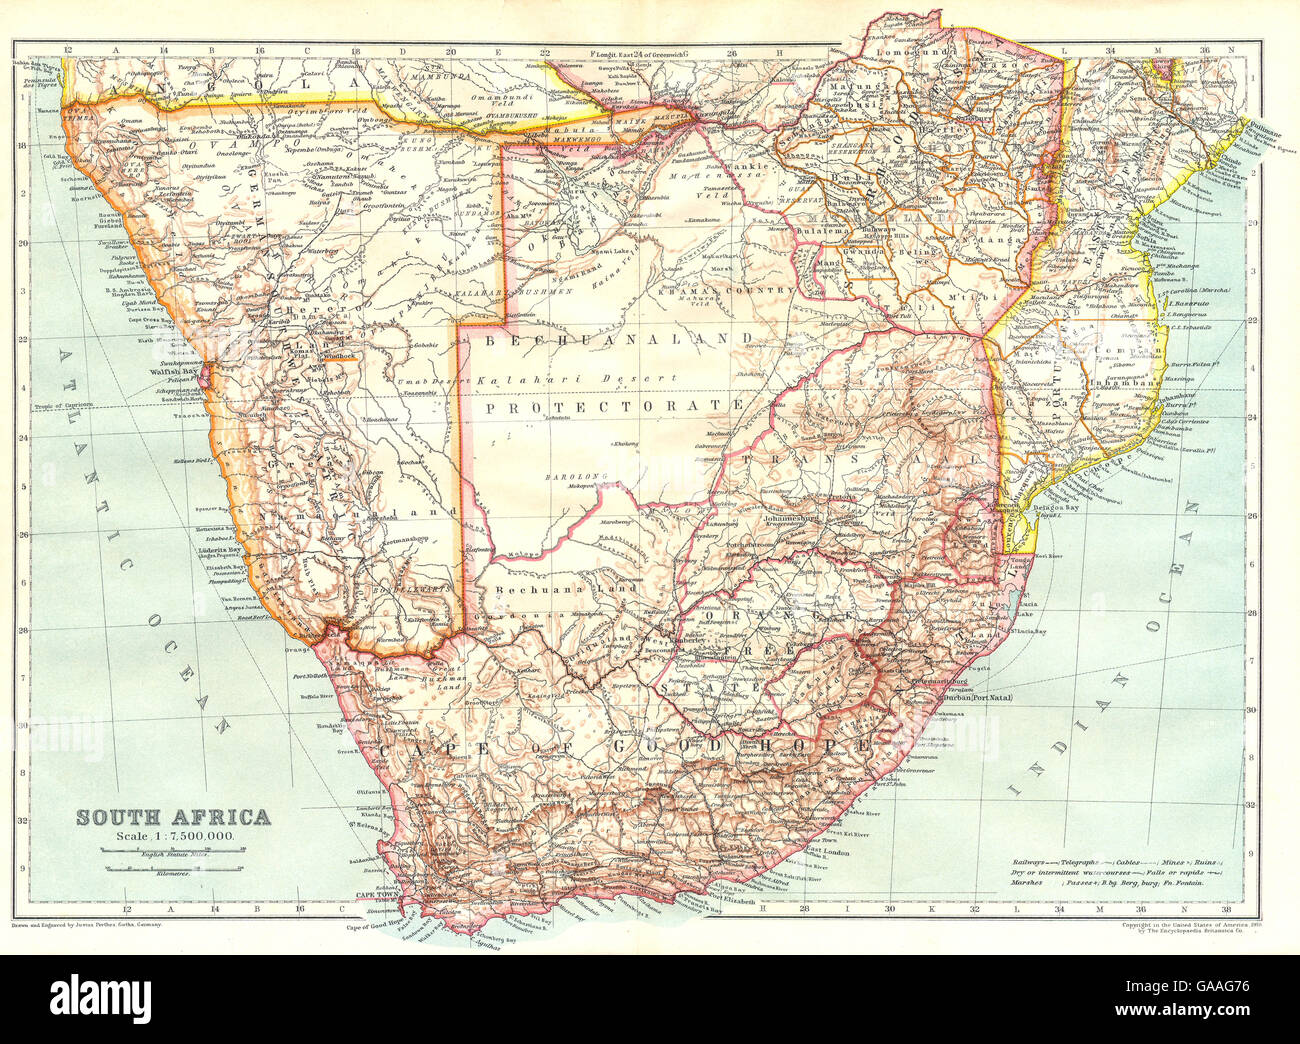 Namibia On Africa Map.Southern Africa South Africa Namibia Botswana Mozambique Rhodesia